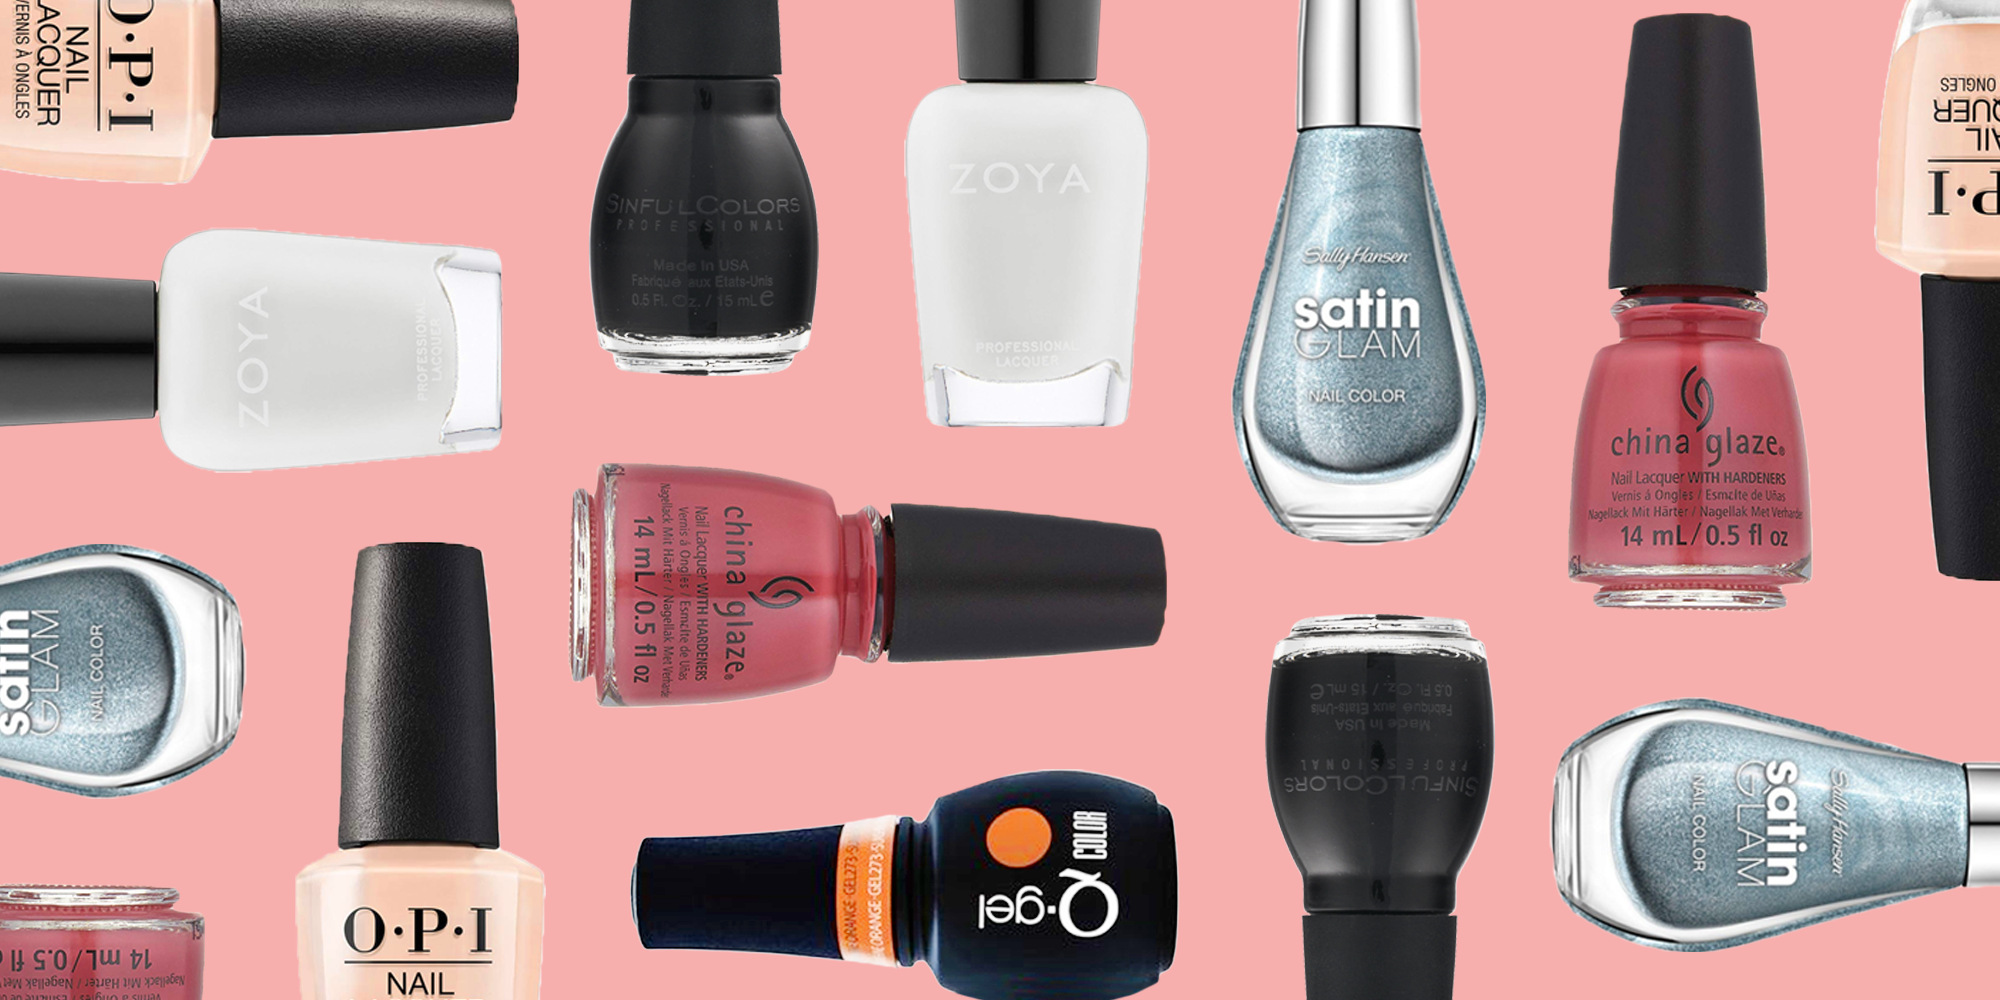 How to make your nails grow faster at home